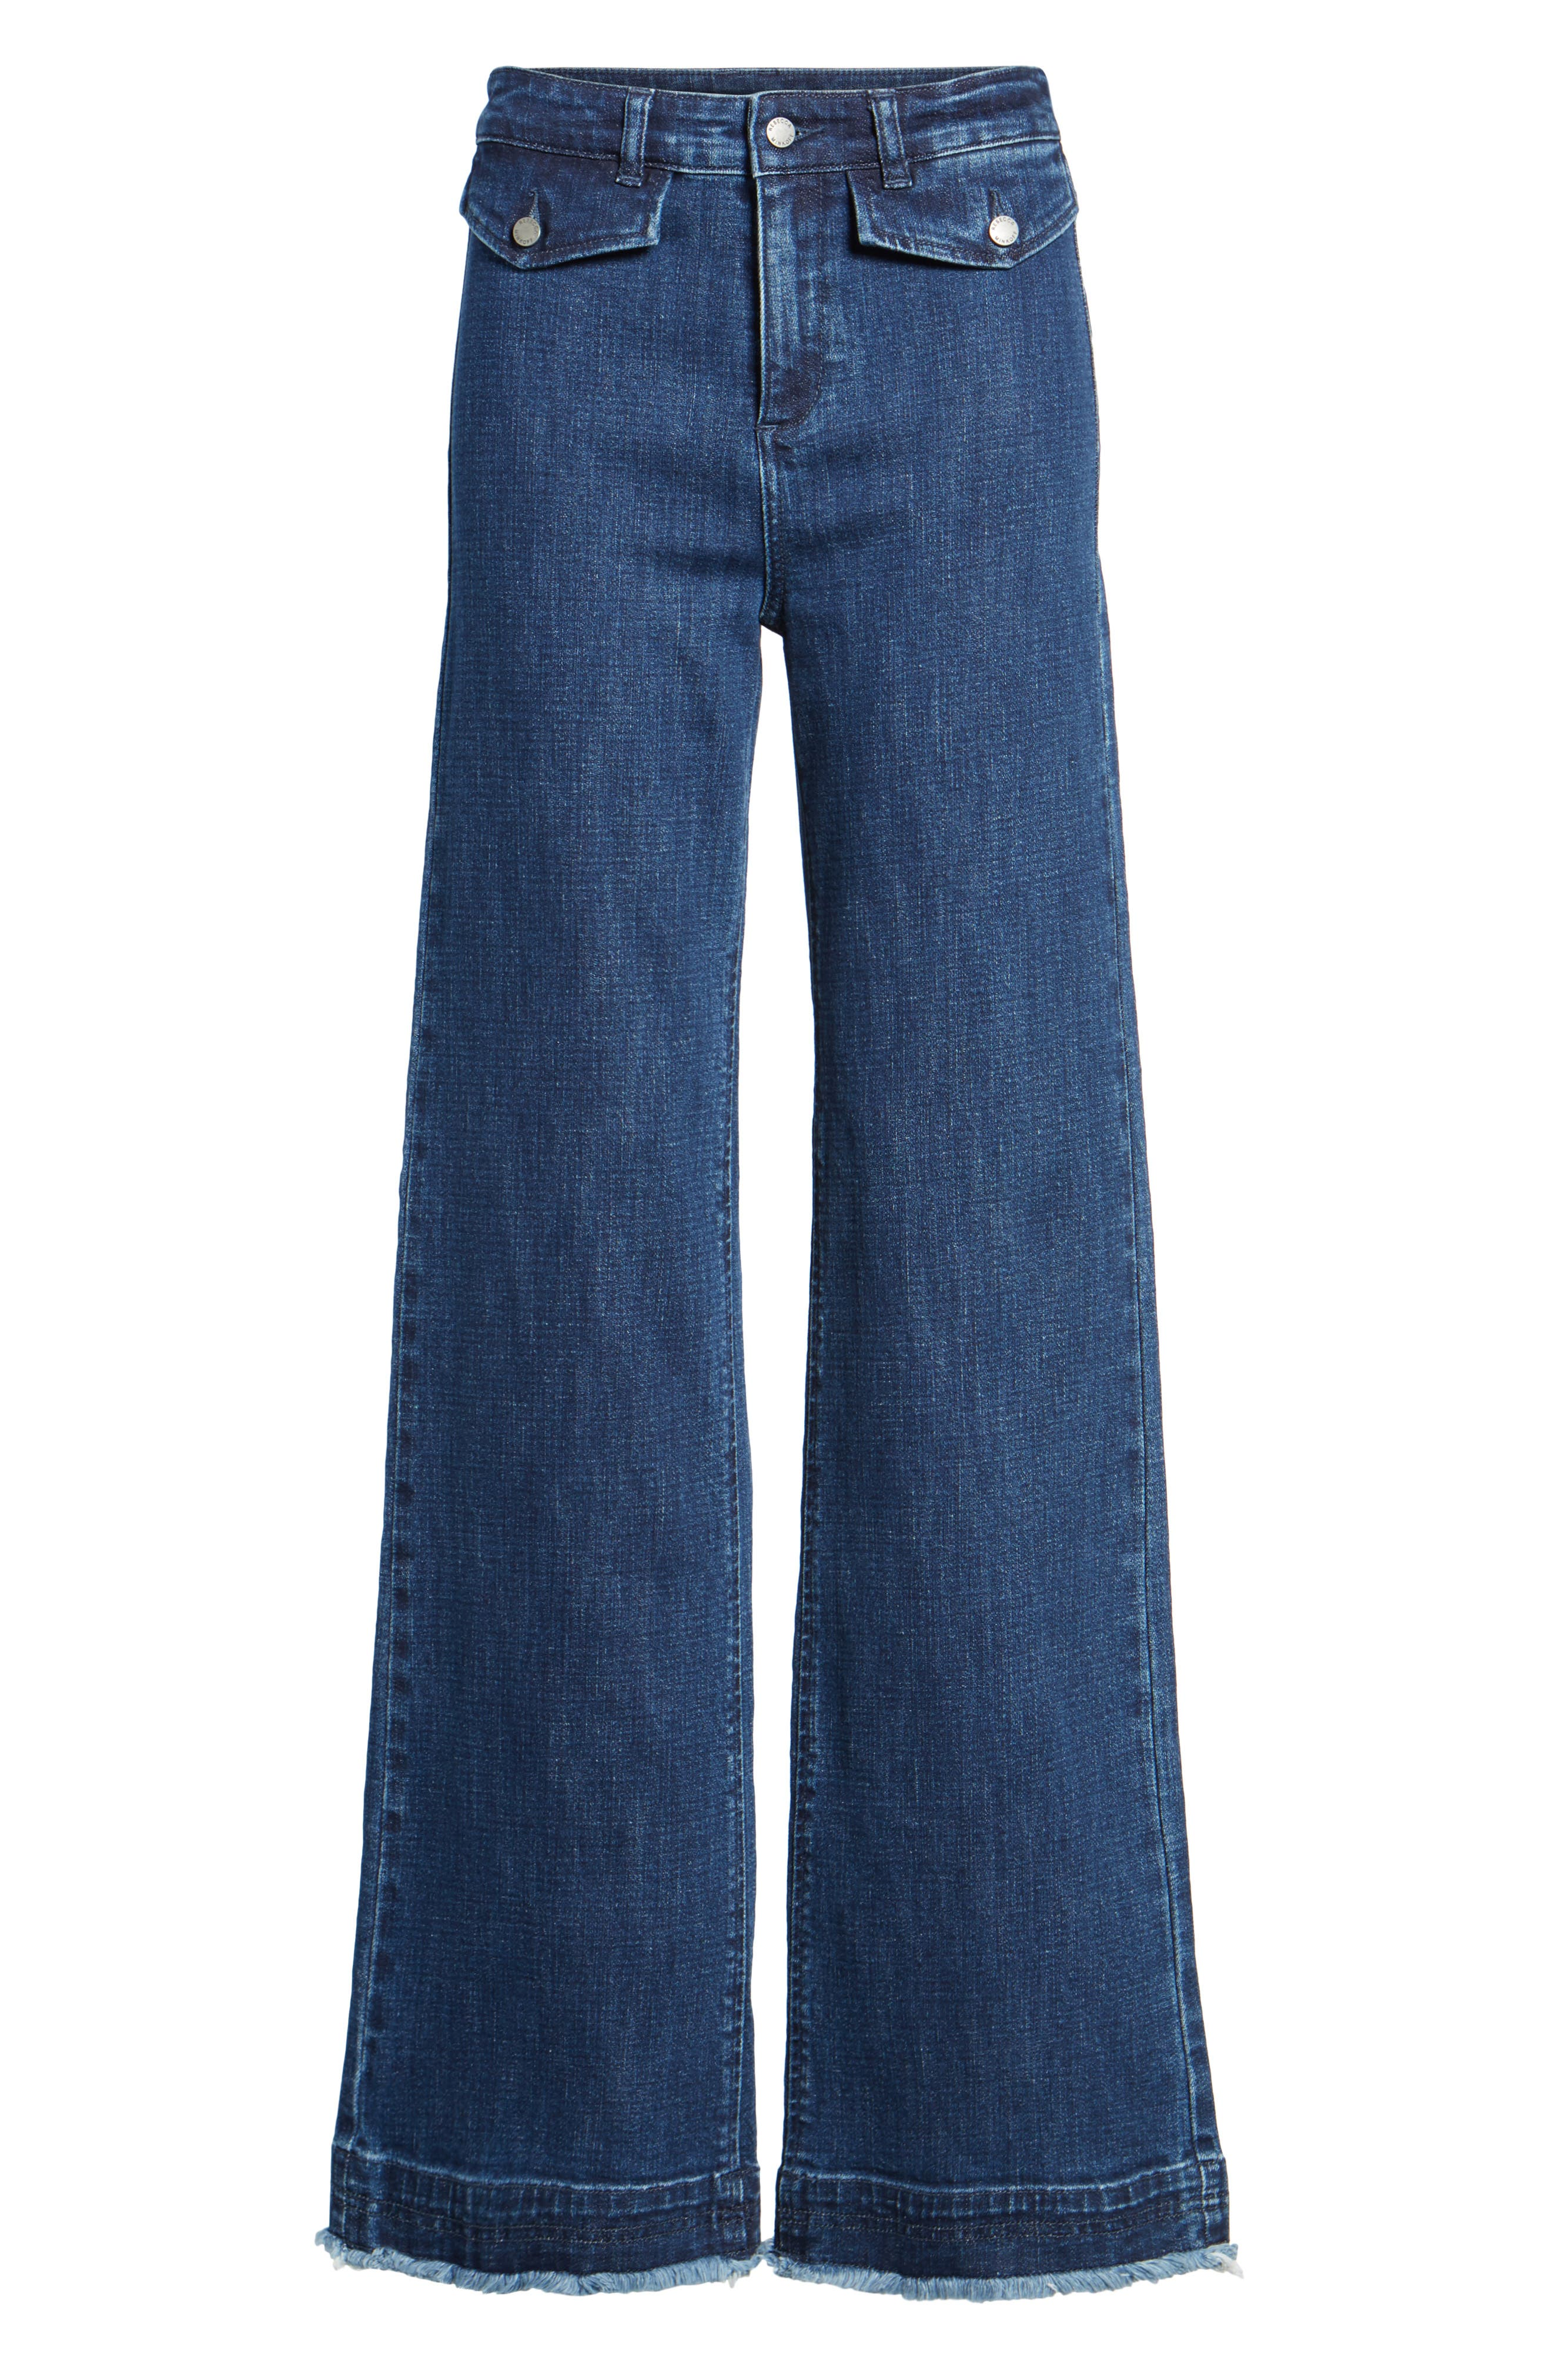 Elwood Wide Leg Jeans,                             Alternate thumbnail 6, color,                             Indigo